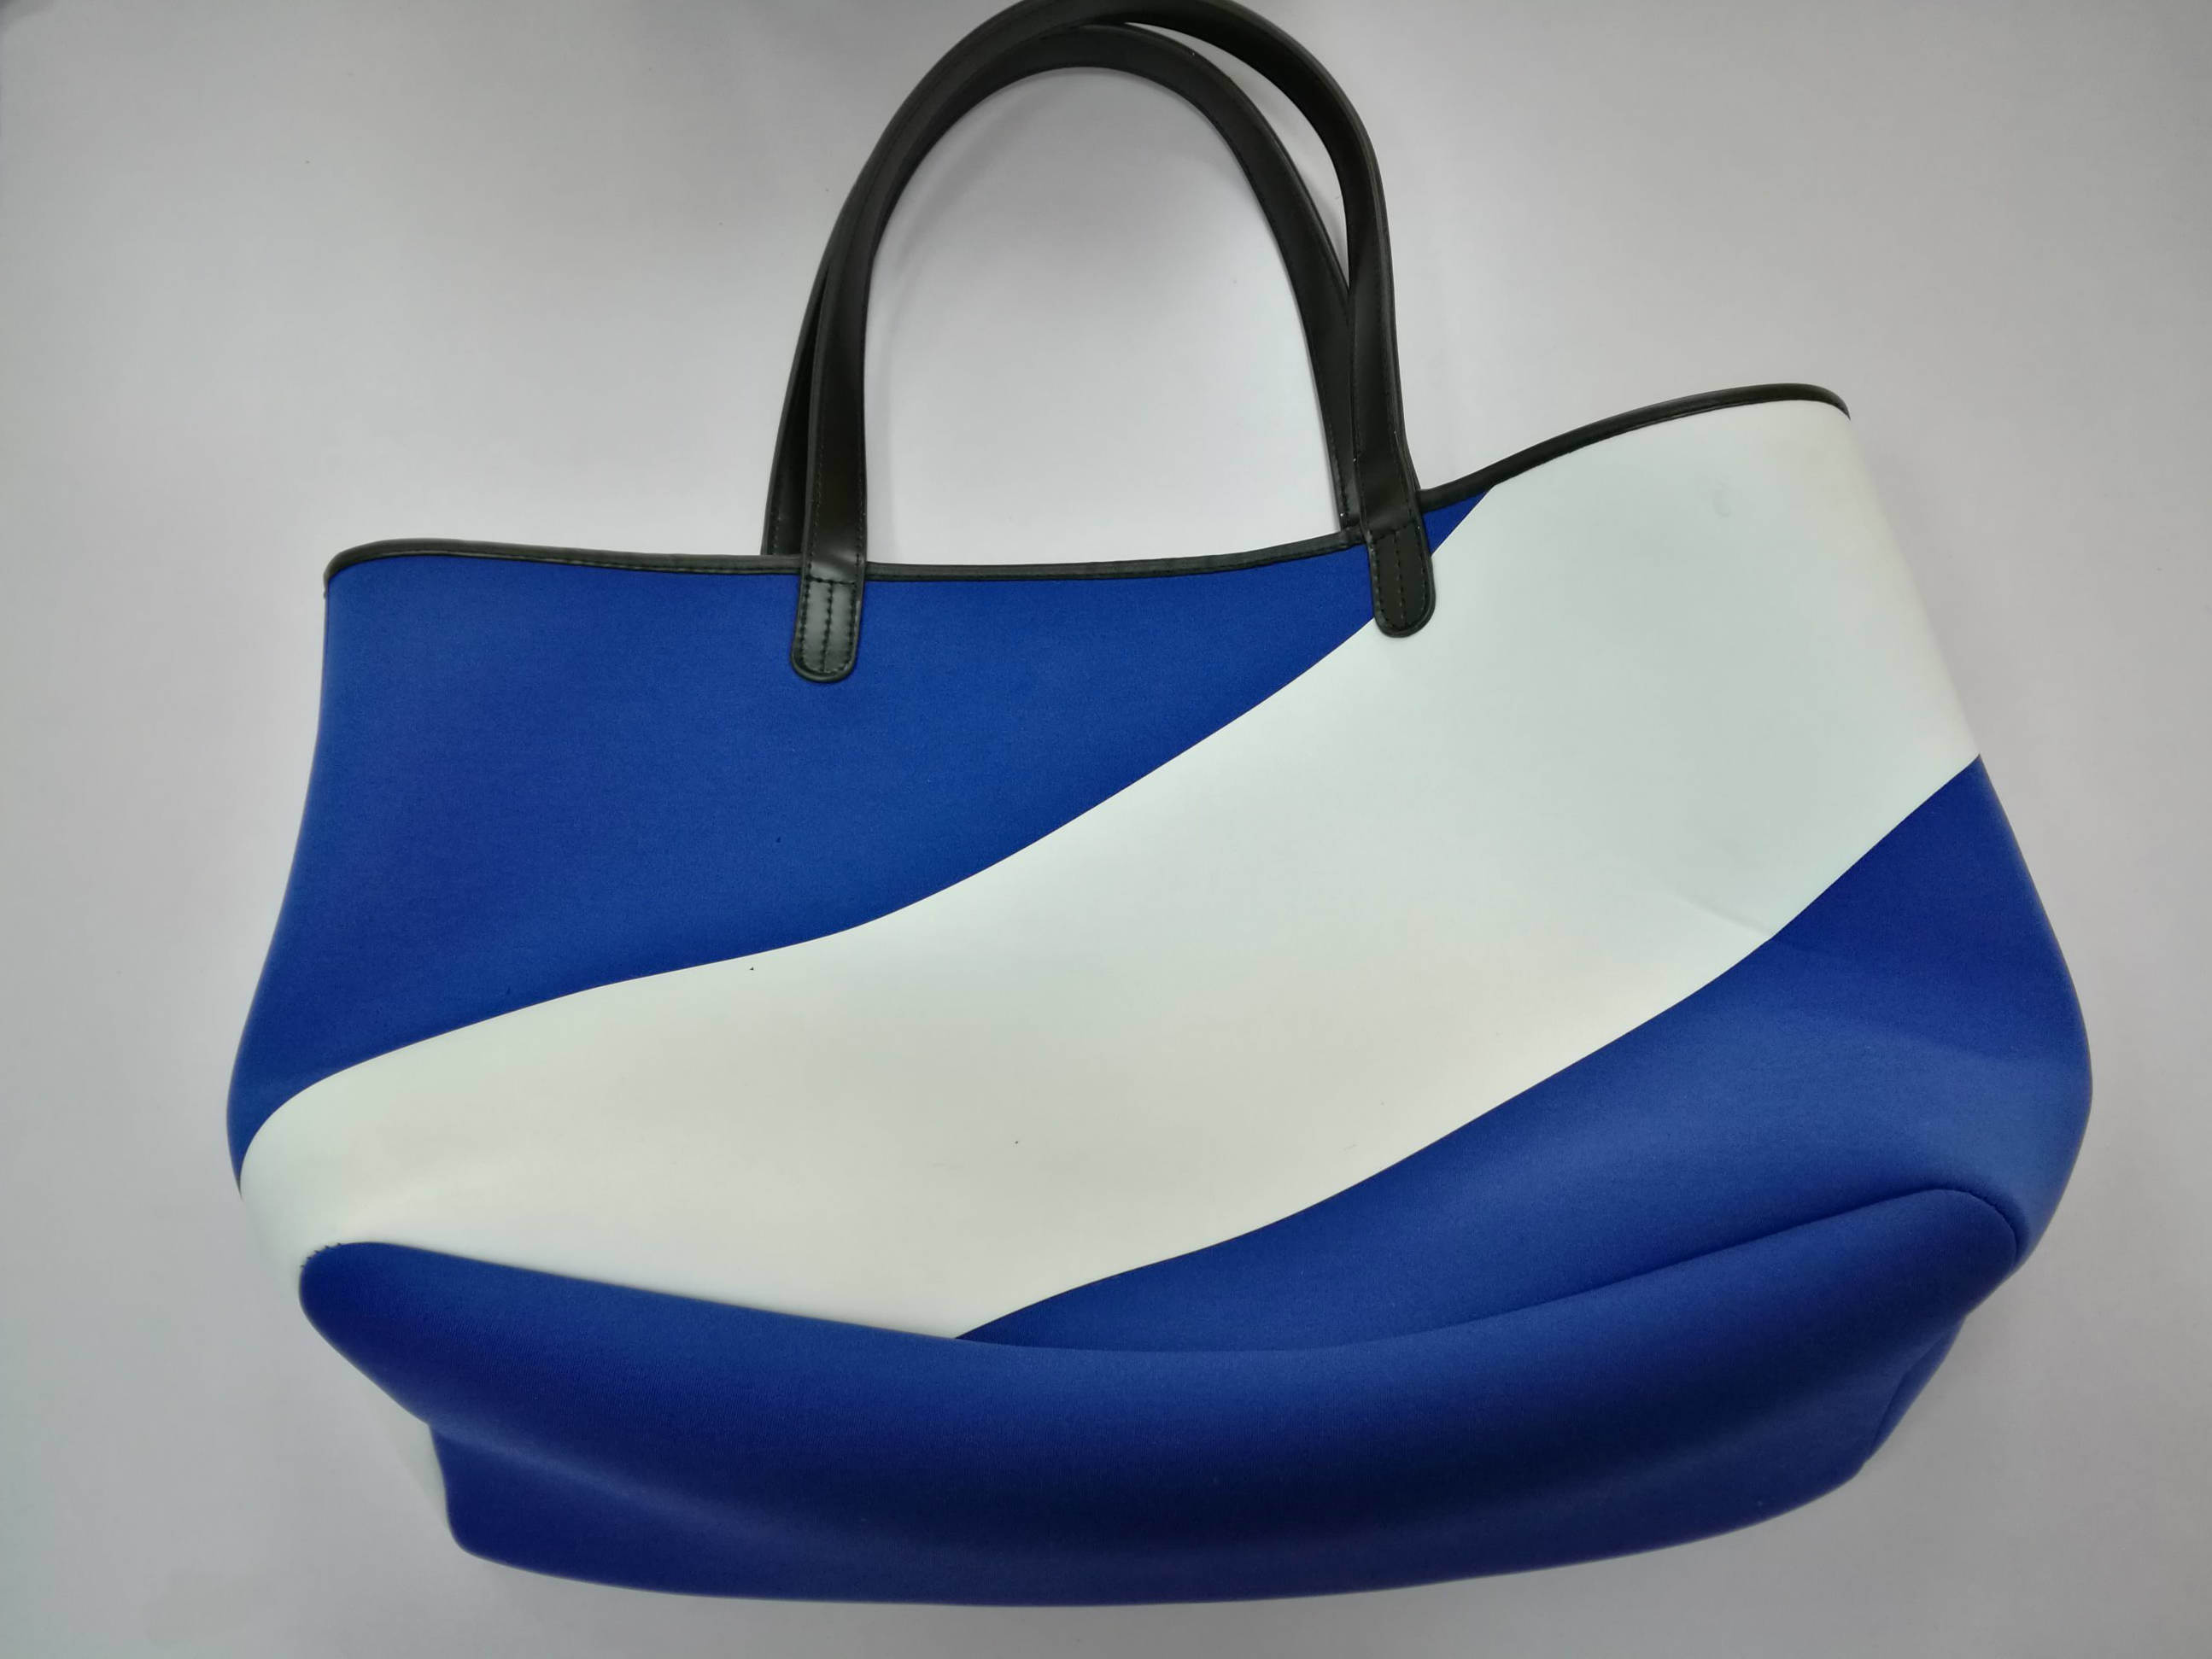 Neoprene Big Handbag Bag Tote Bag Shoulder Bag